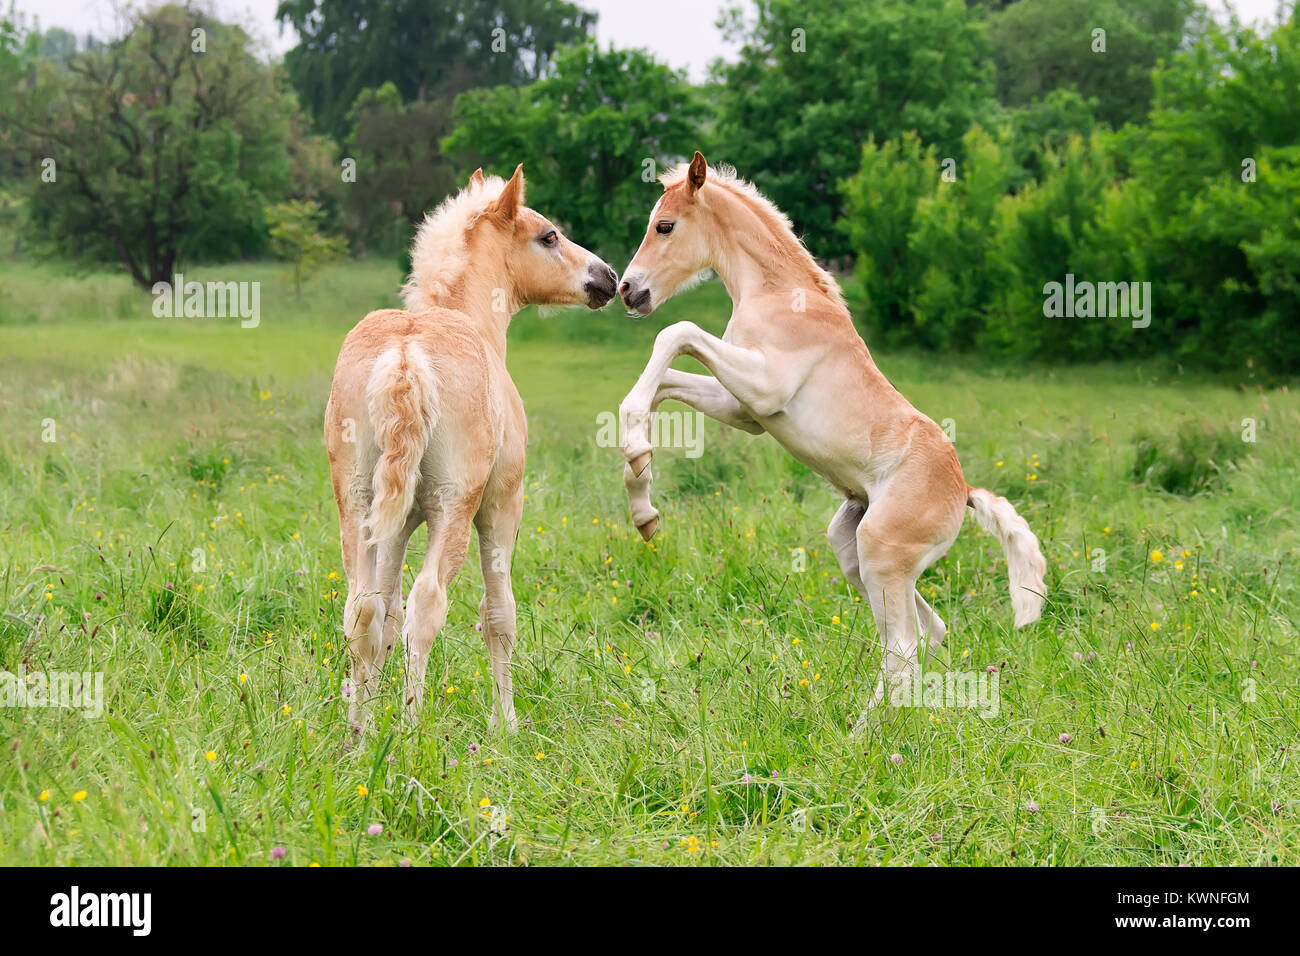 Two cute Haflinger horse foals have fun, playing, rearing and frolic around in a meadow in spring, Germany. - Stock Image